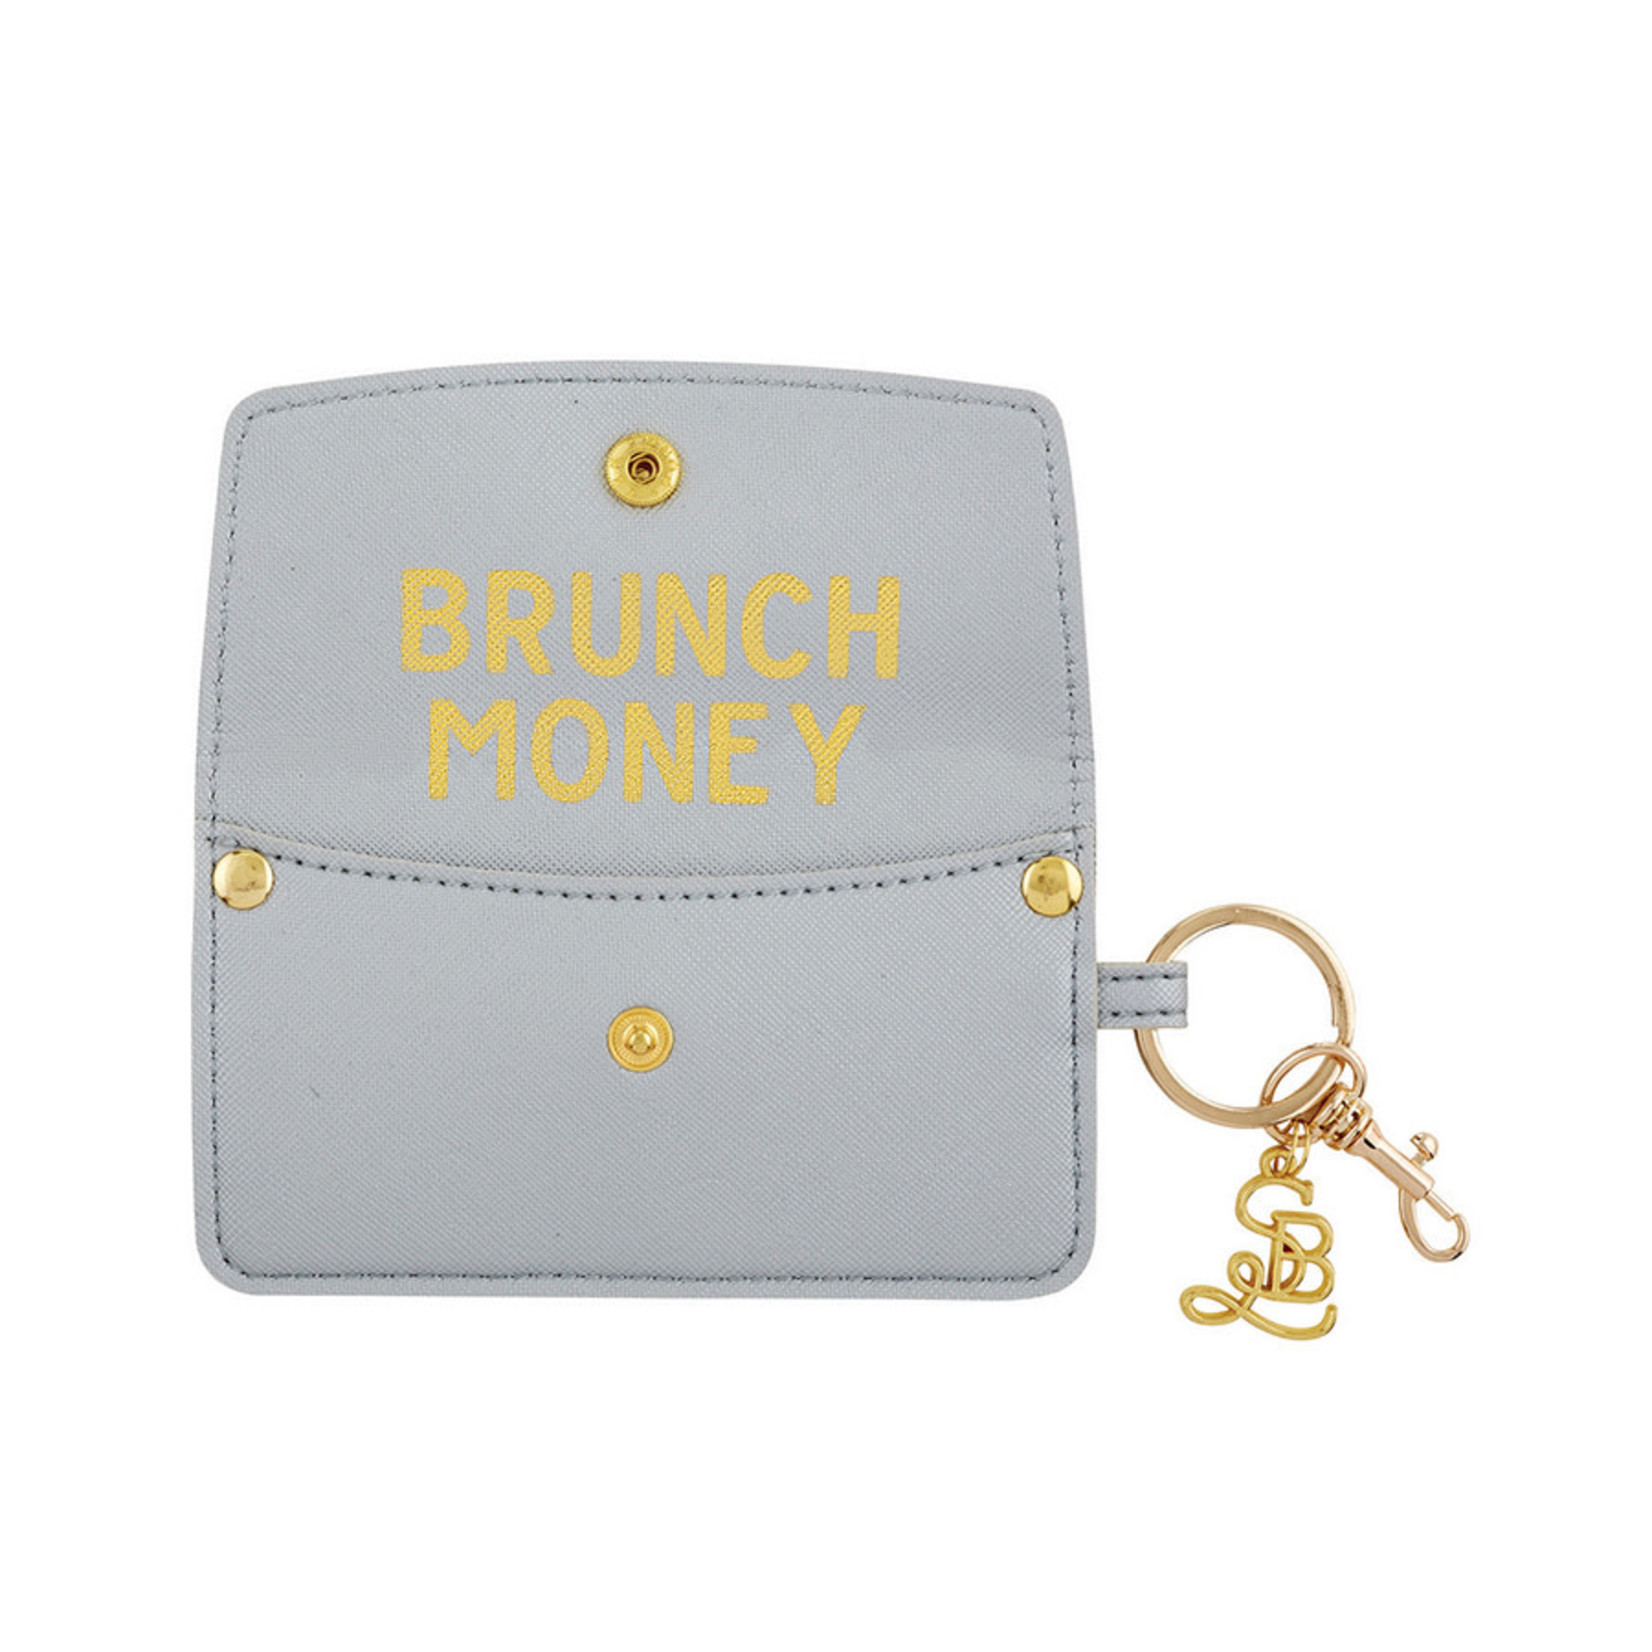 Creative Brands Credit Card Pouch